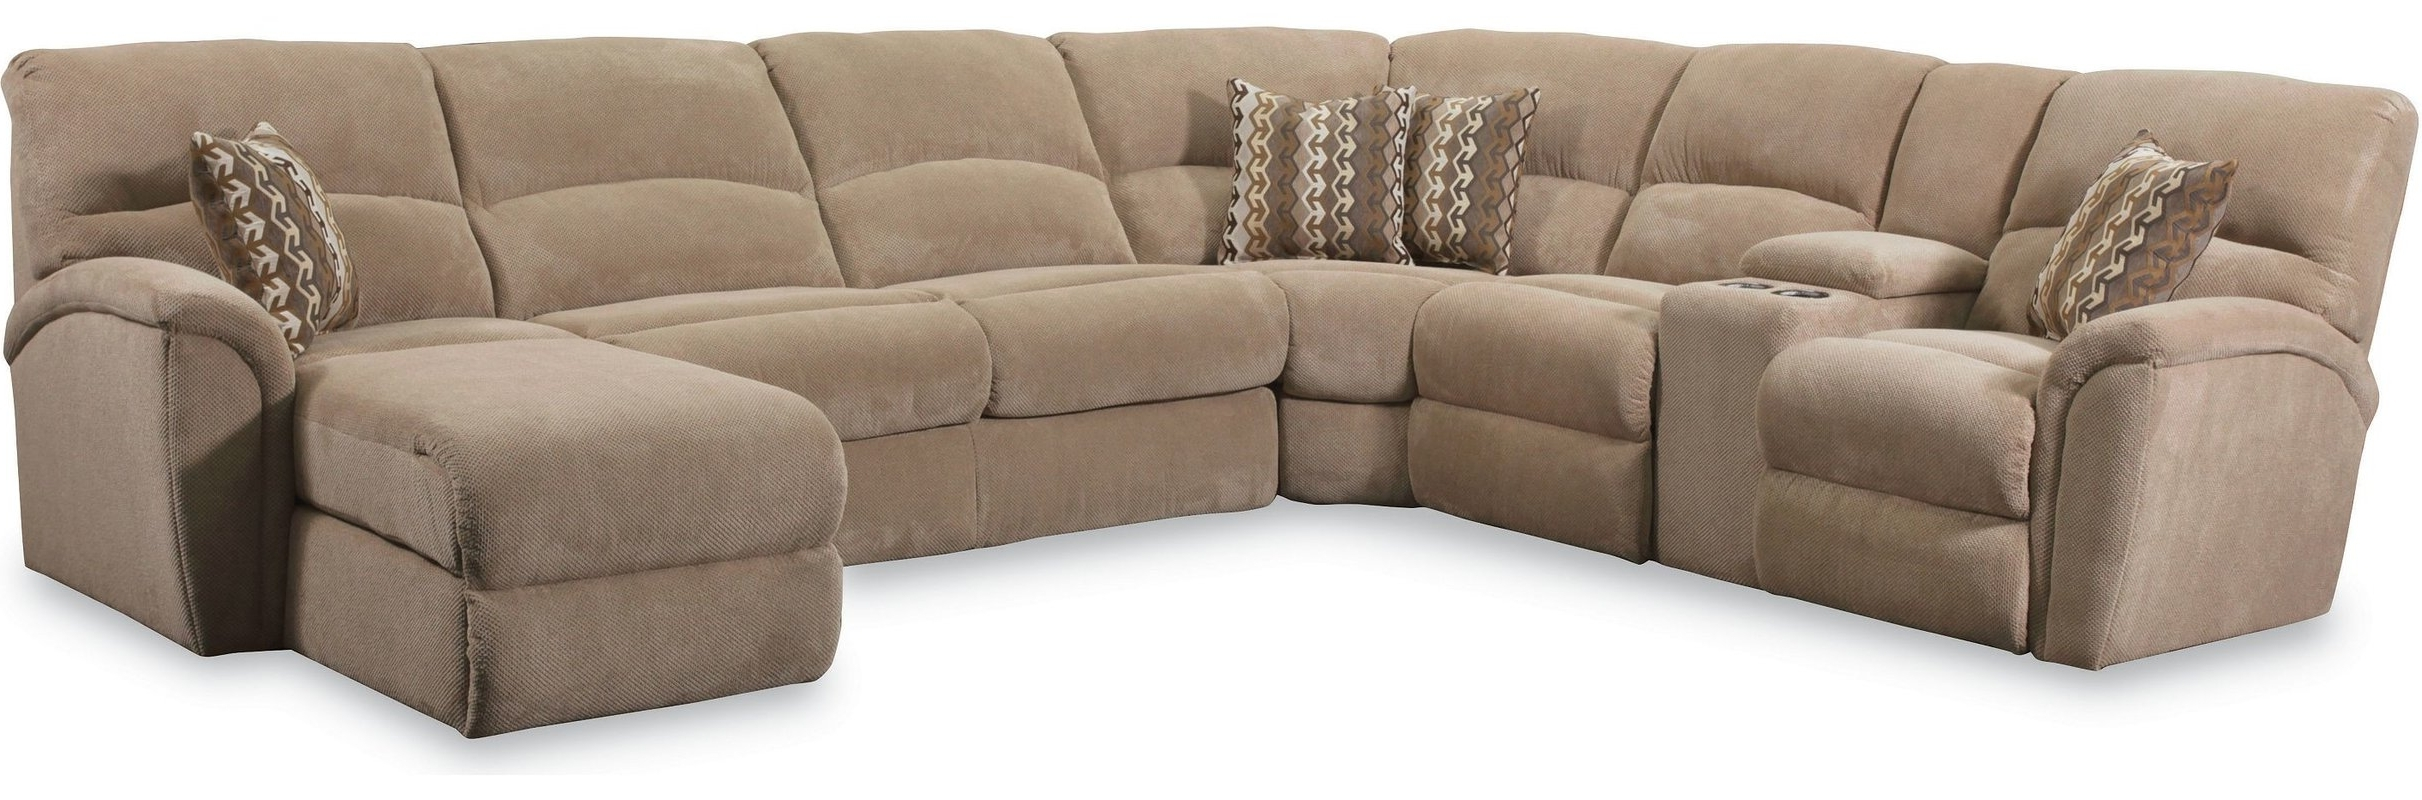 Wayfair Intended For Grand Furniture Sectional Sofas (View 17 of 20)